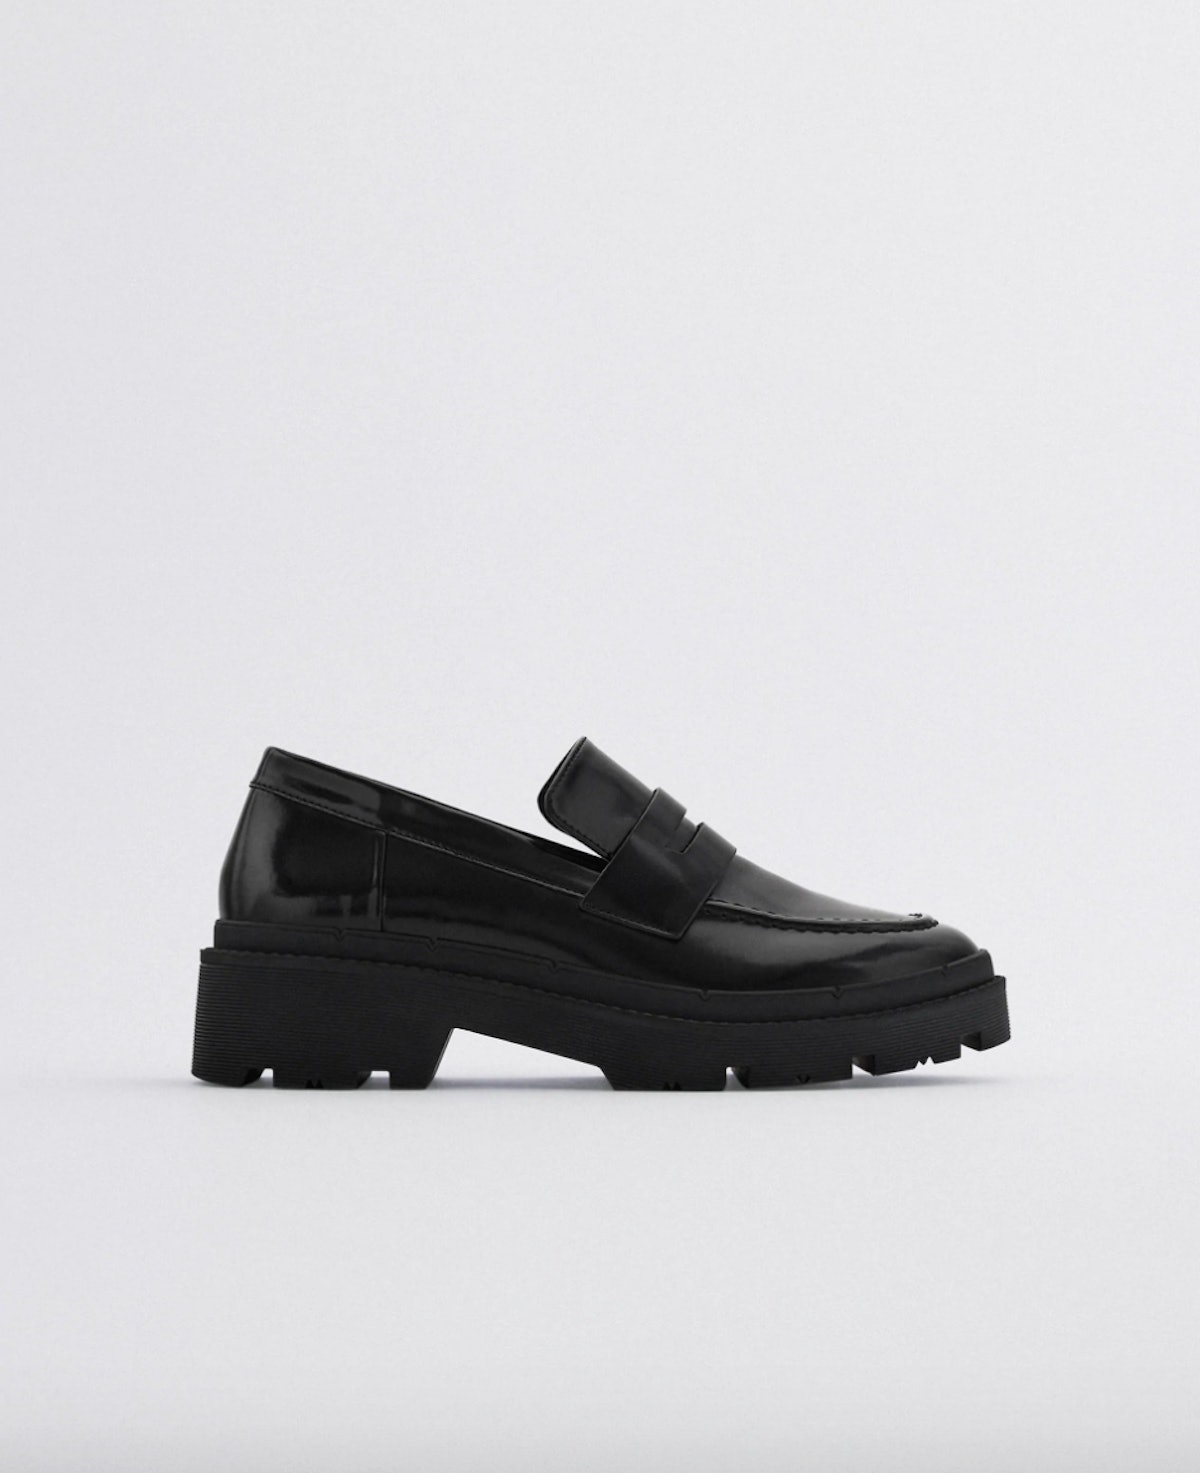 Treaded Sole Loafers